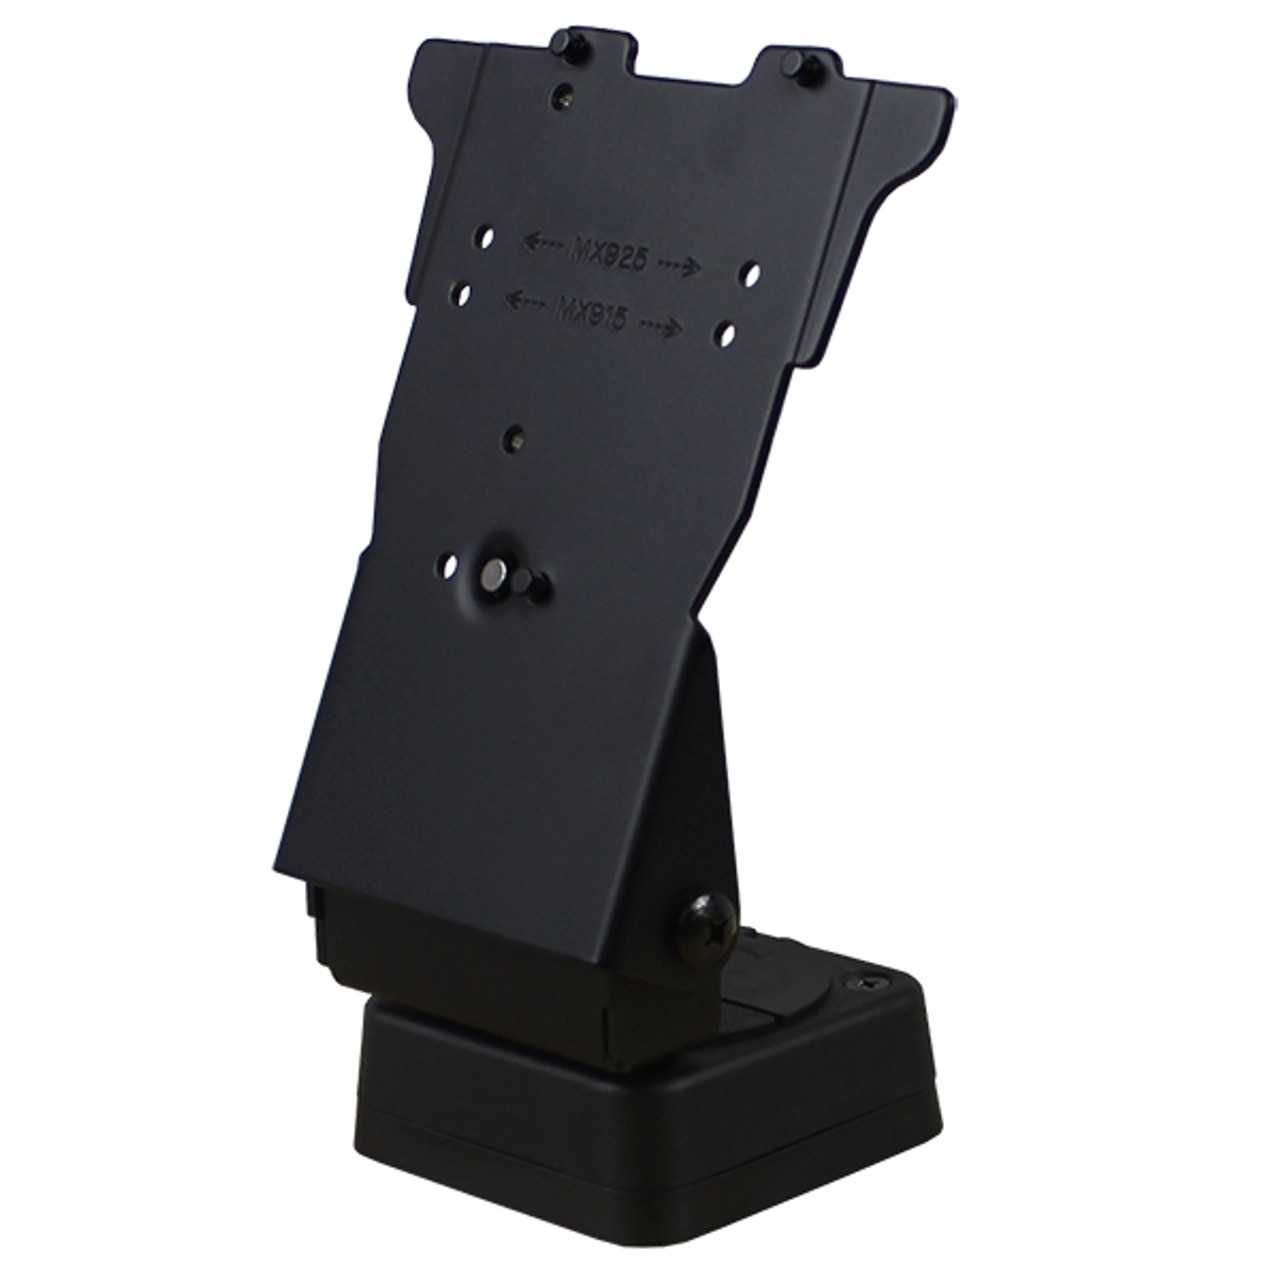 VeriFone MX915 Credit Card Stand Square Base by Swivel Stands